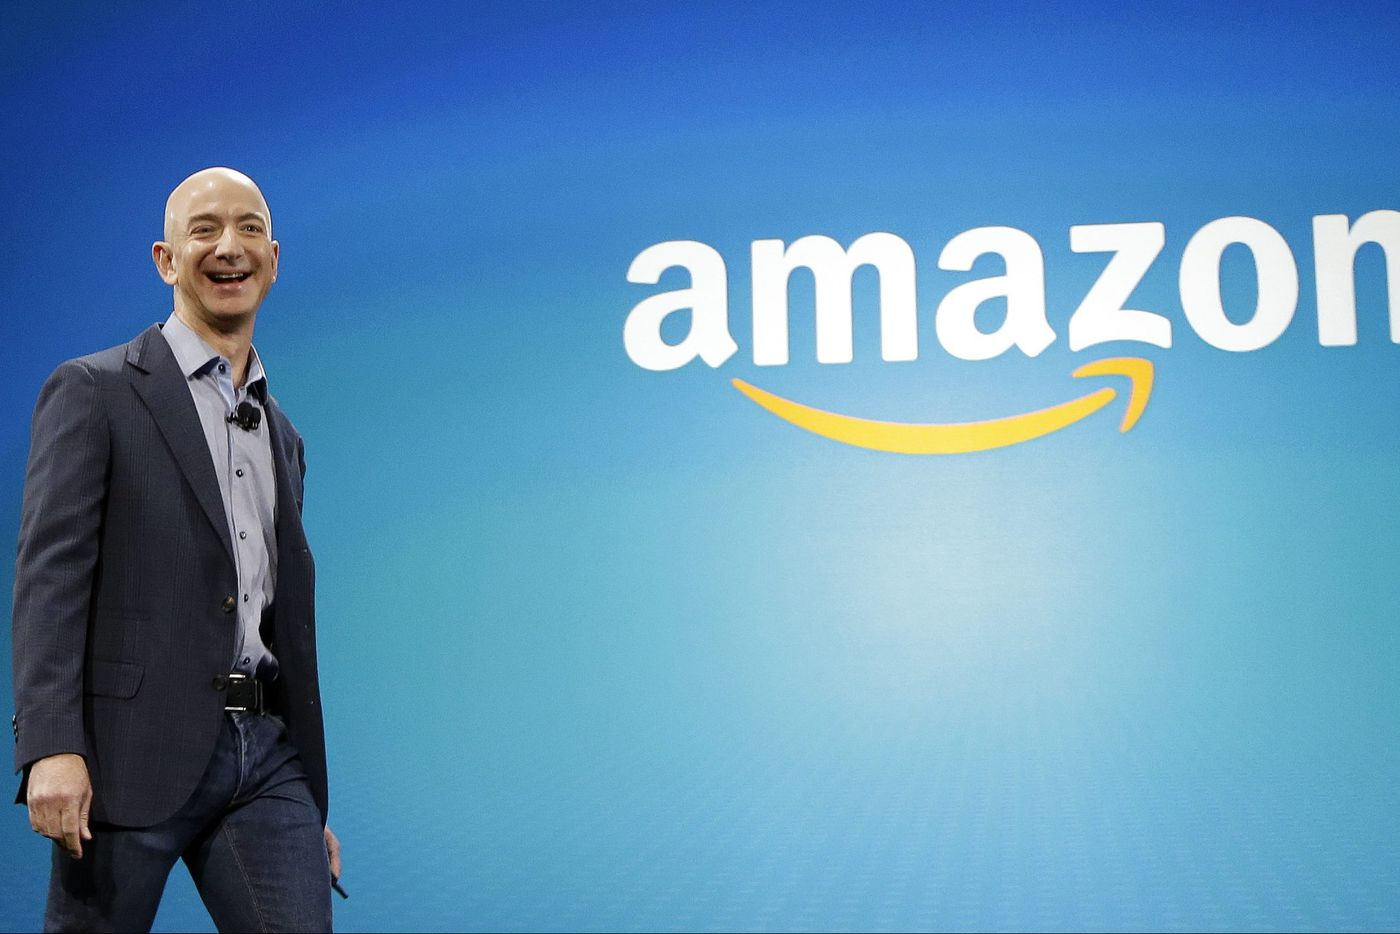 Jeff Bezos Tweets Plans for $2B Philanthropic Effort